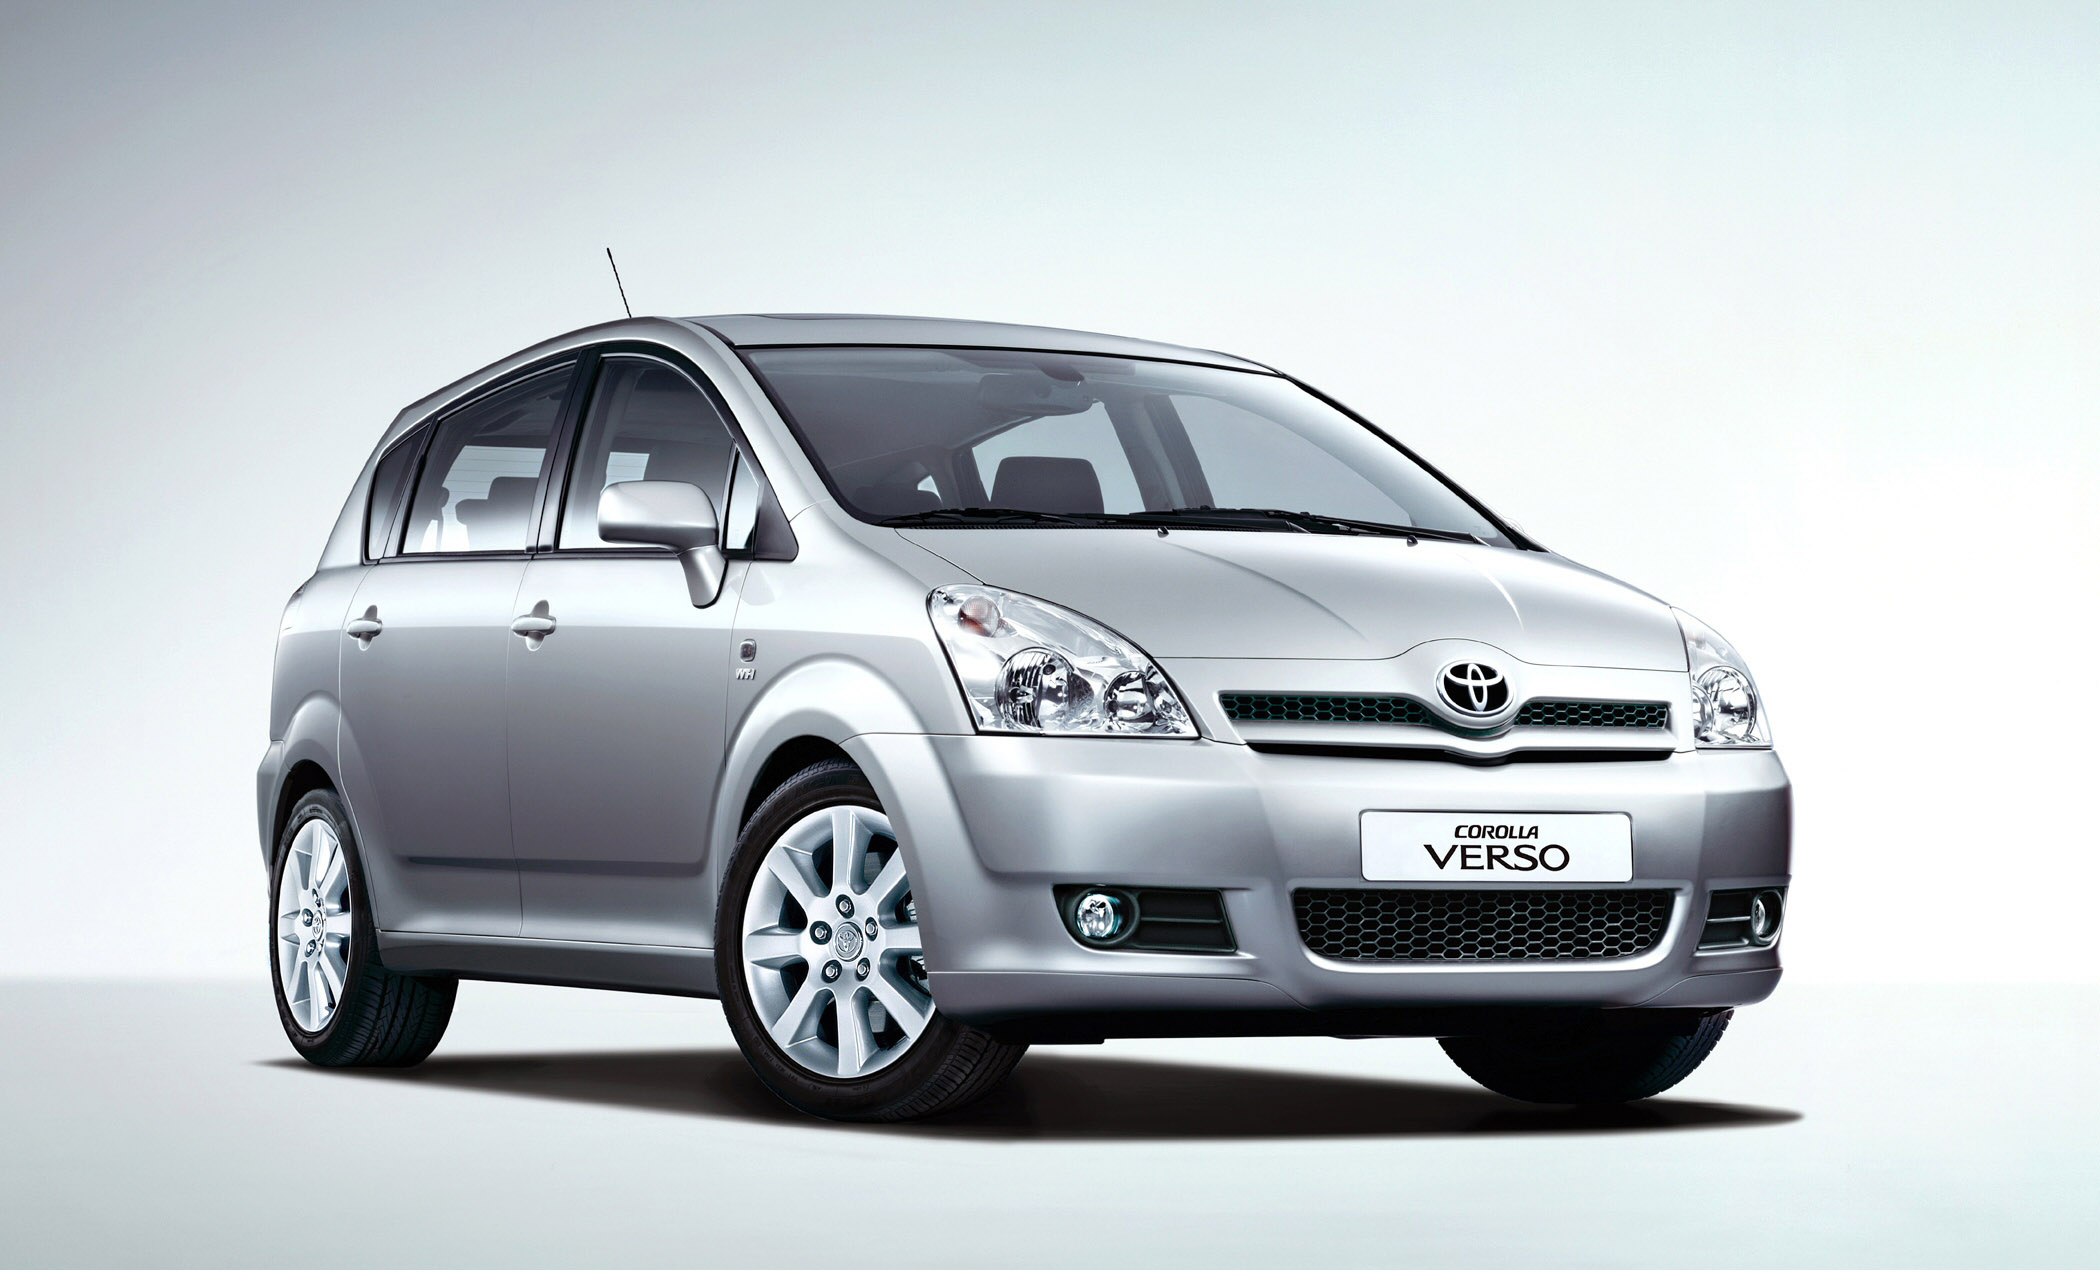 2008 toyota corolla verso partsopen. Black Bedroom Furniture Sets. Home Design Ideas